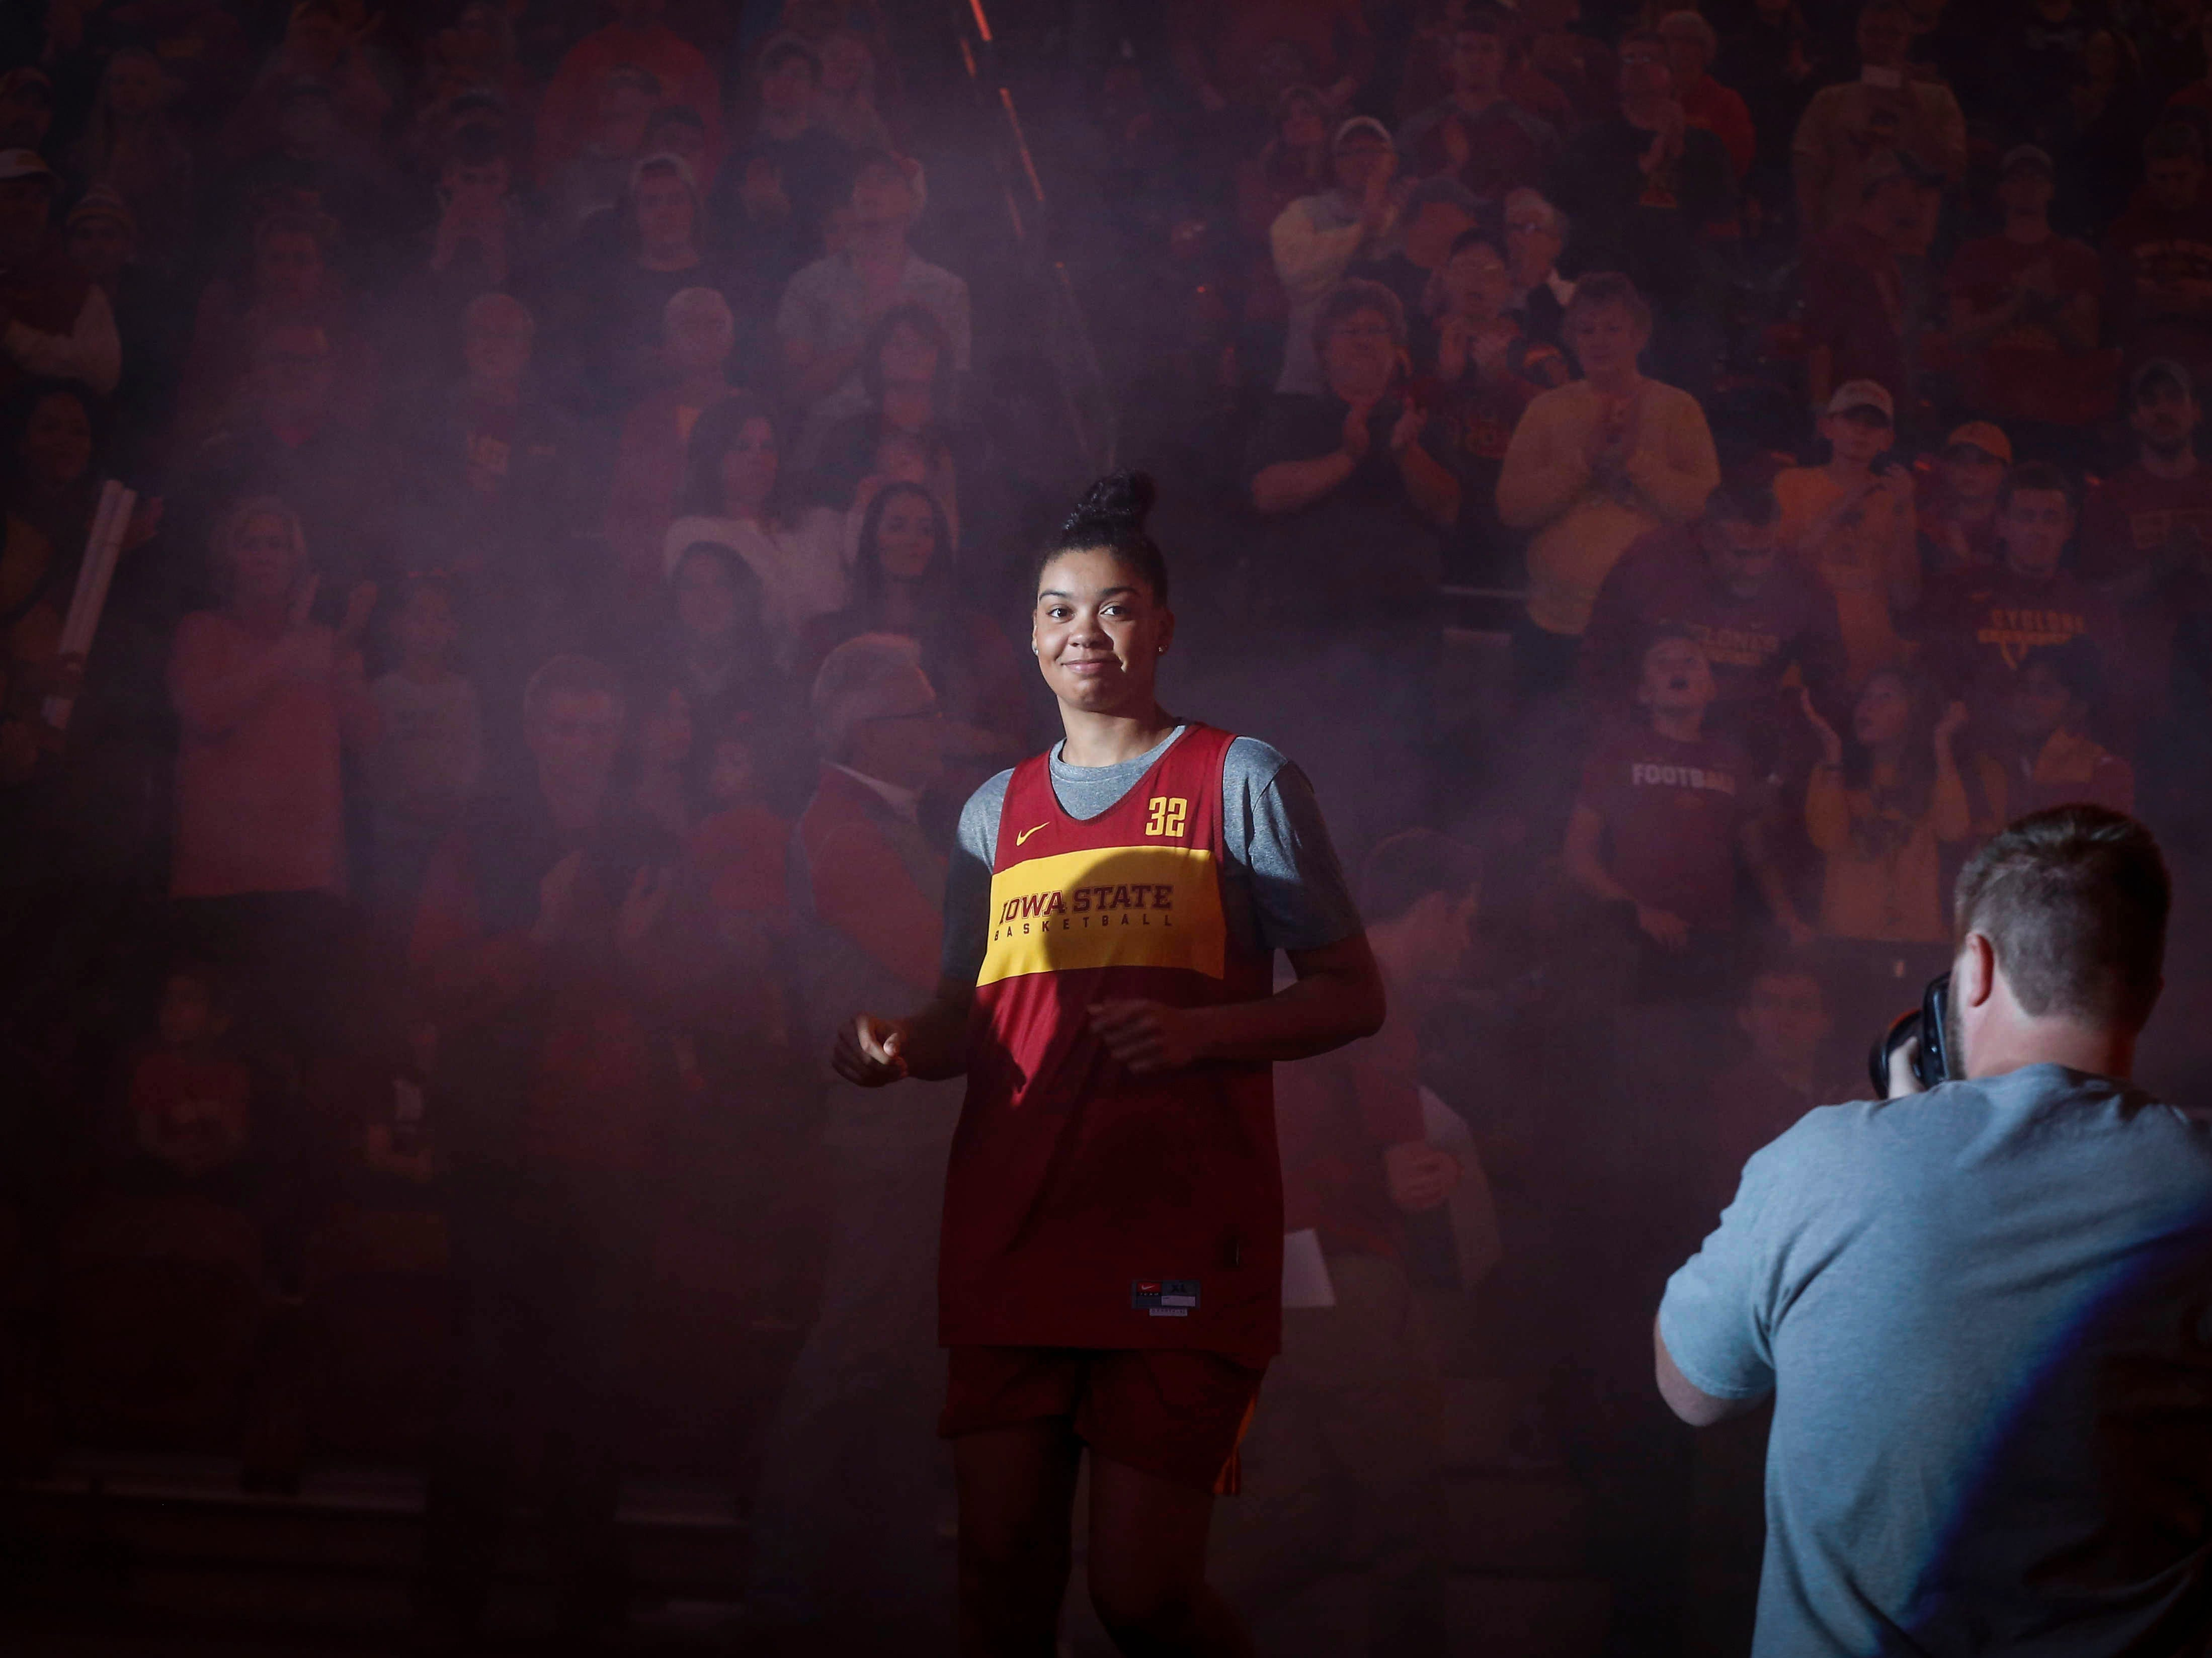 Iowa State senior forward Meredith Burkhall of Urbandale is introduced during Hilton Madness at Hilton Coliseum in Ames on Friday, Oct. 12, 2018.